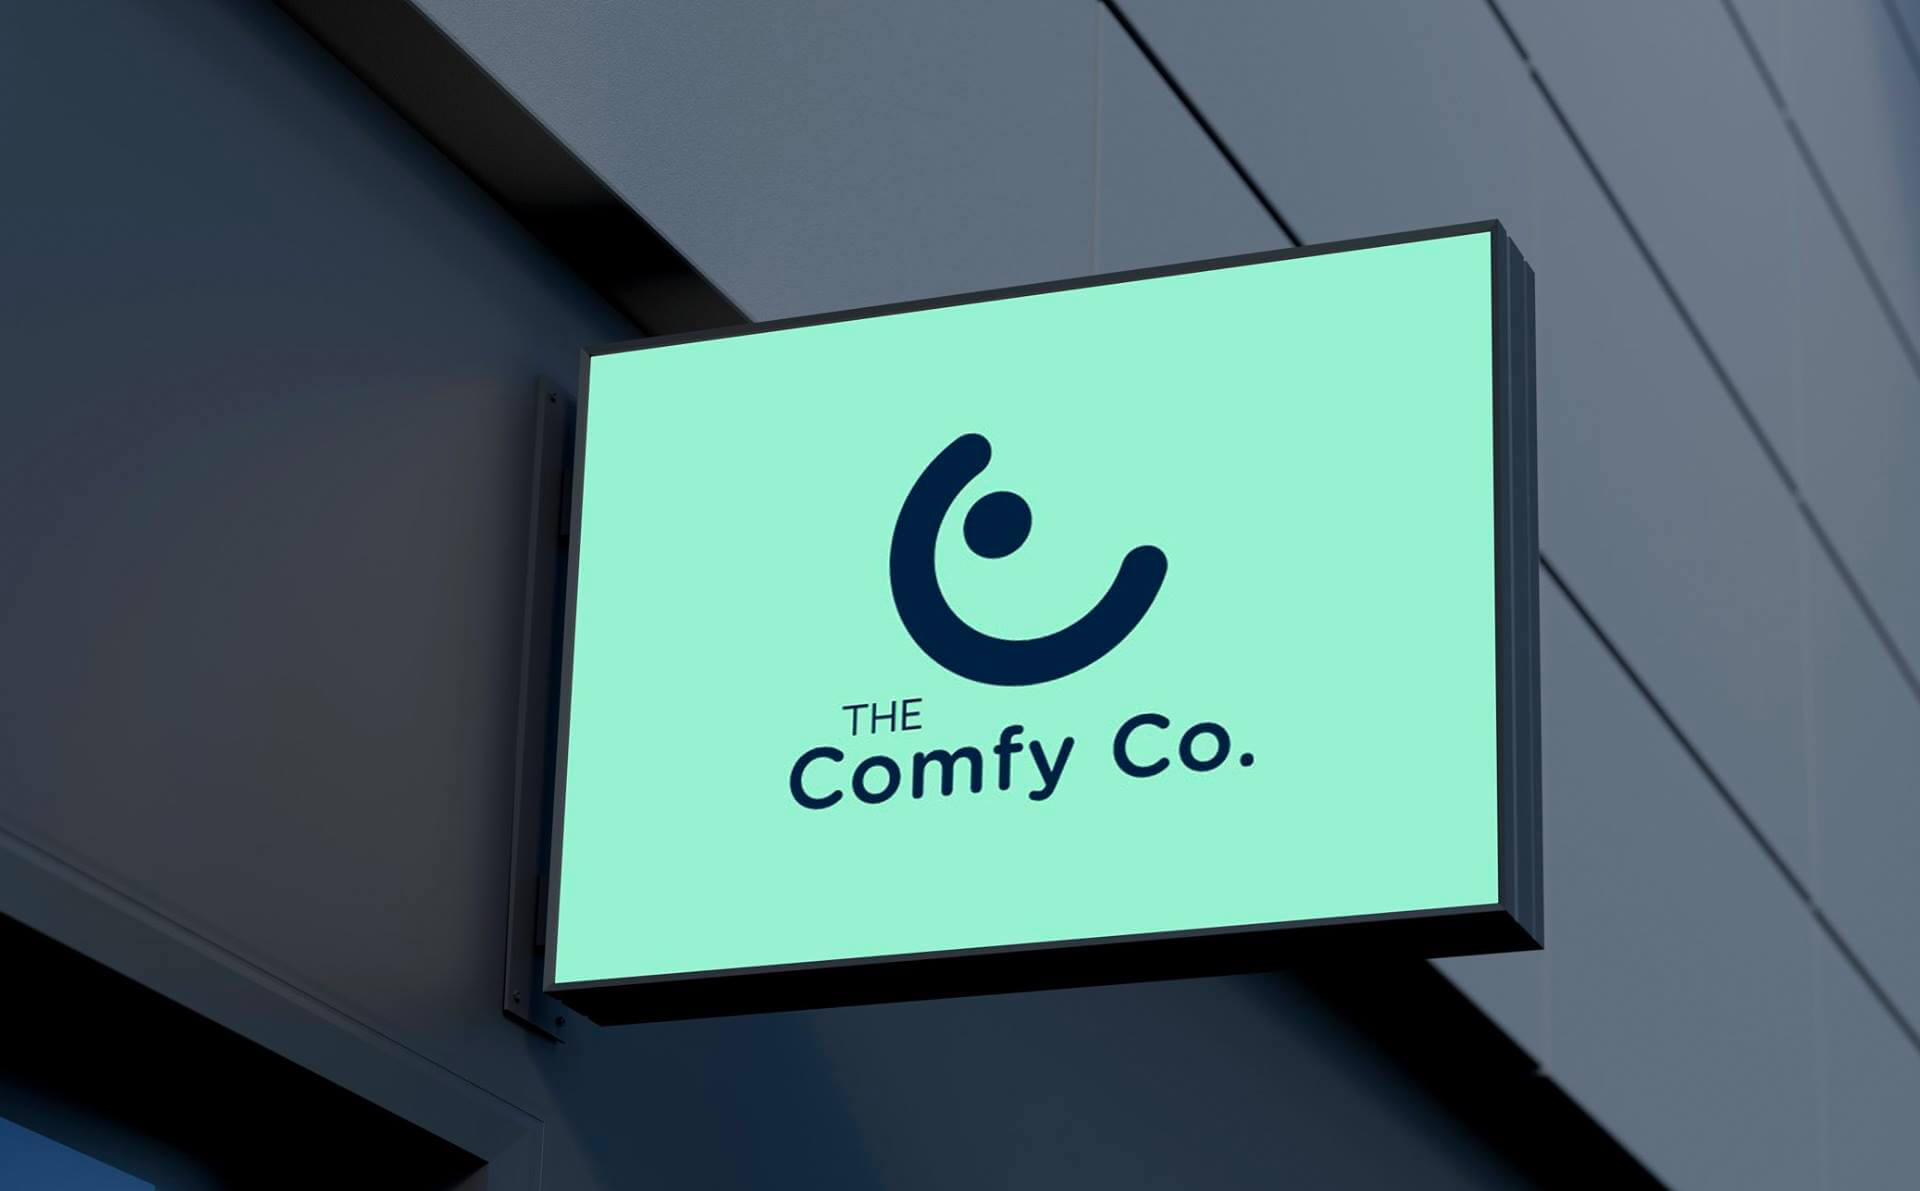 The Comfy Co branding